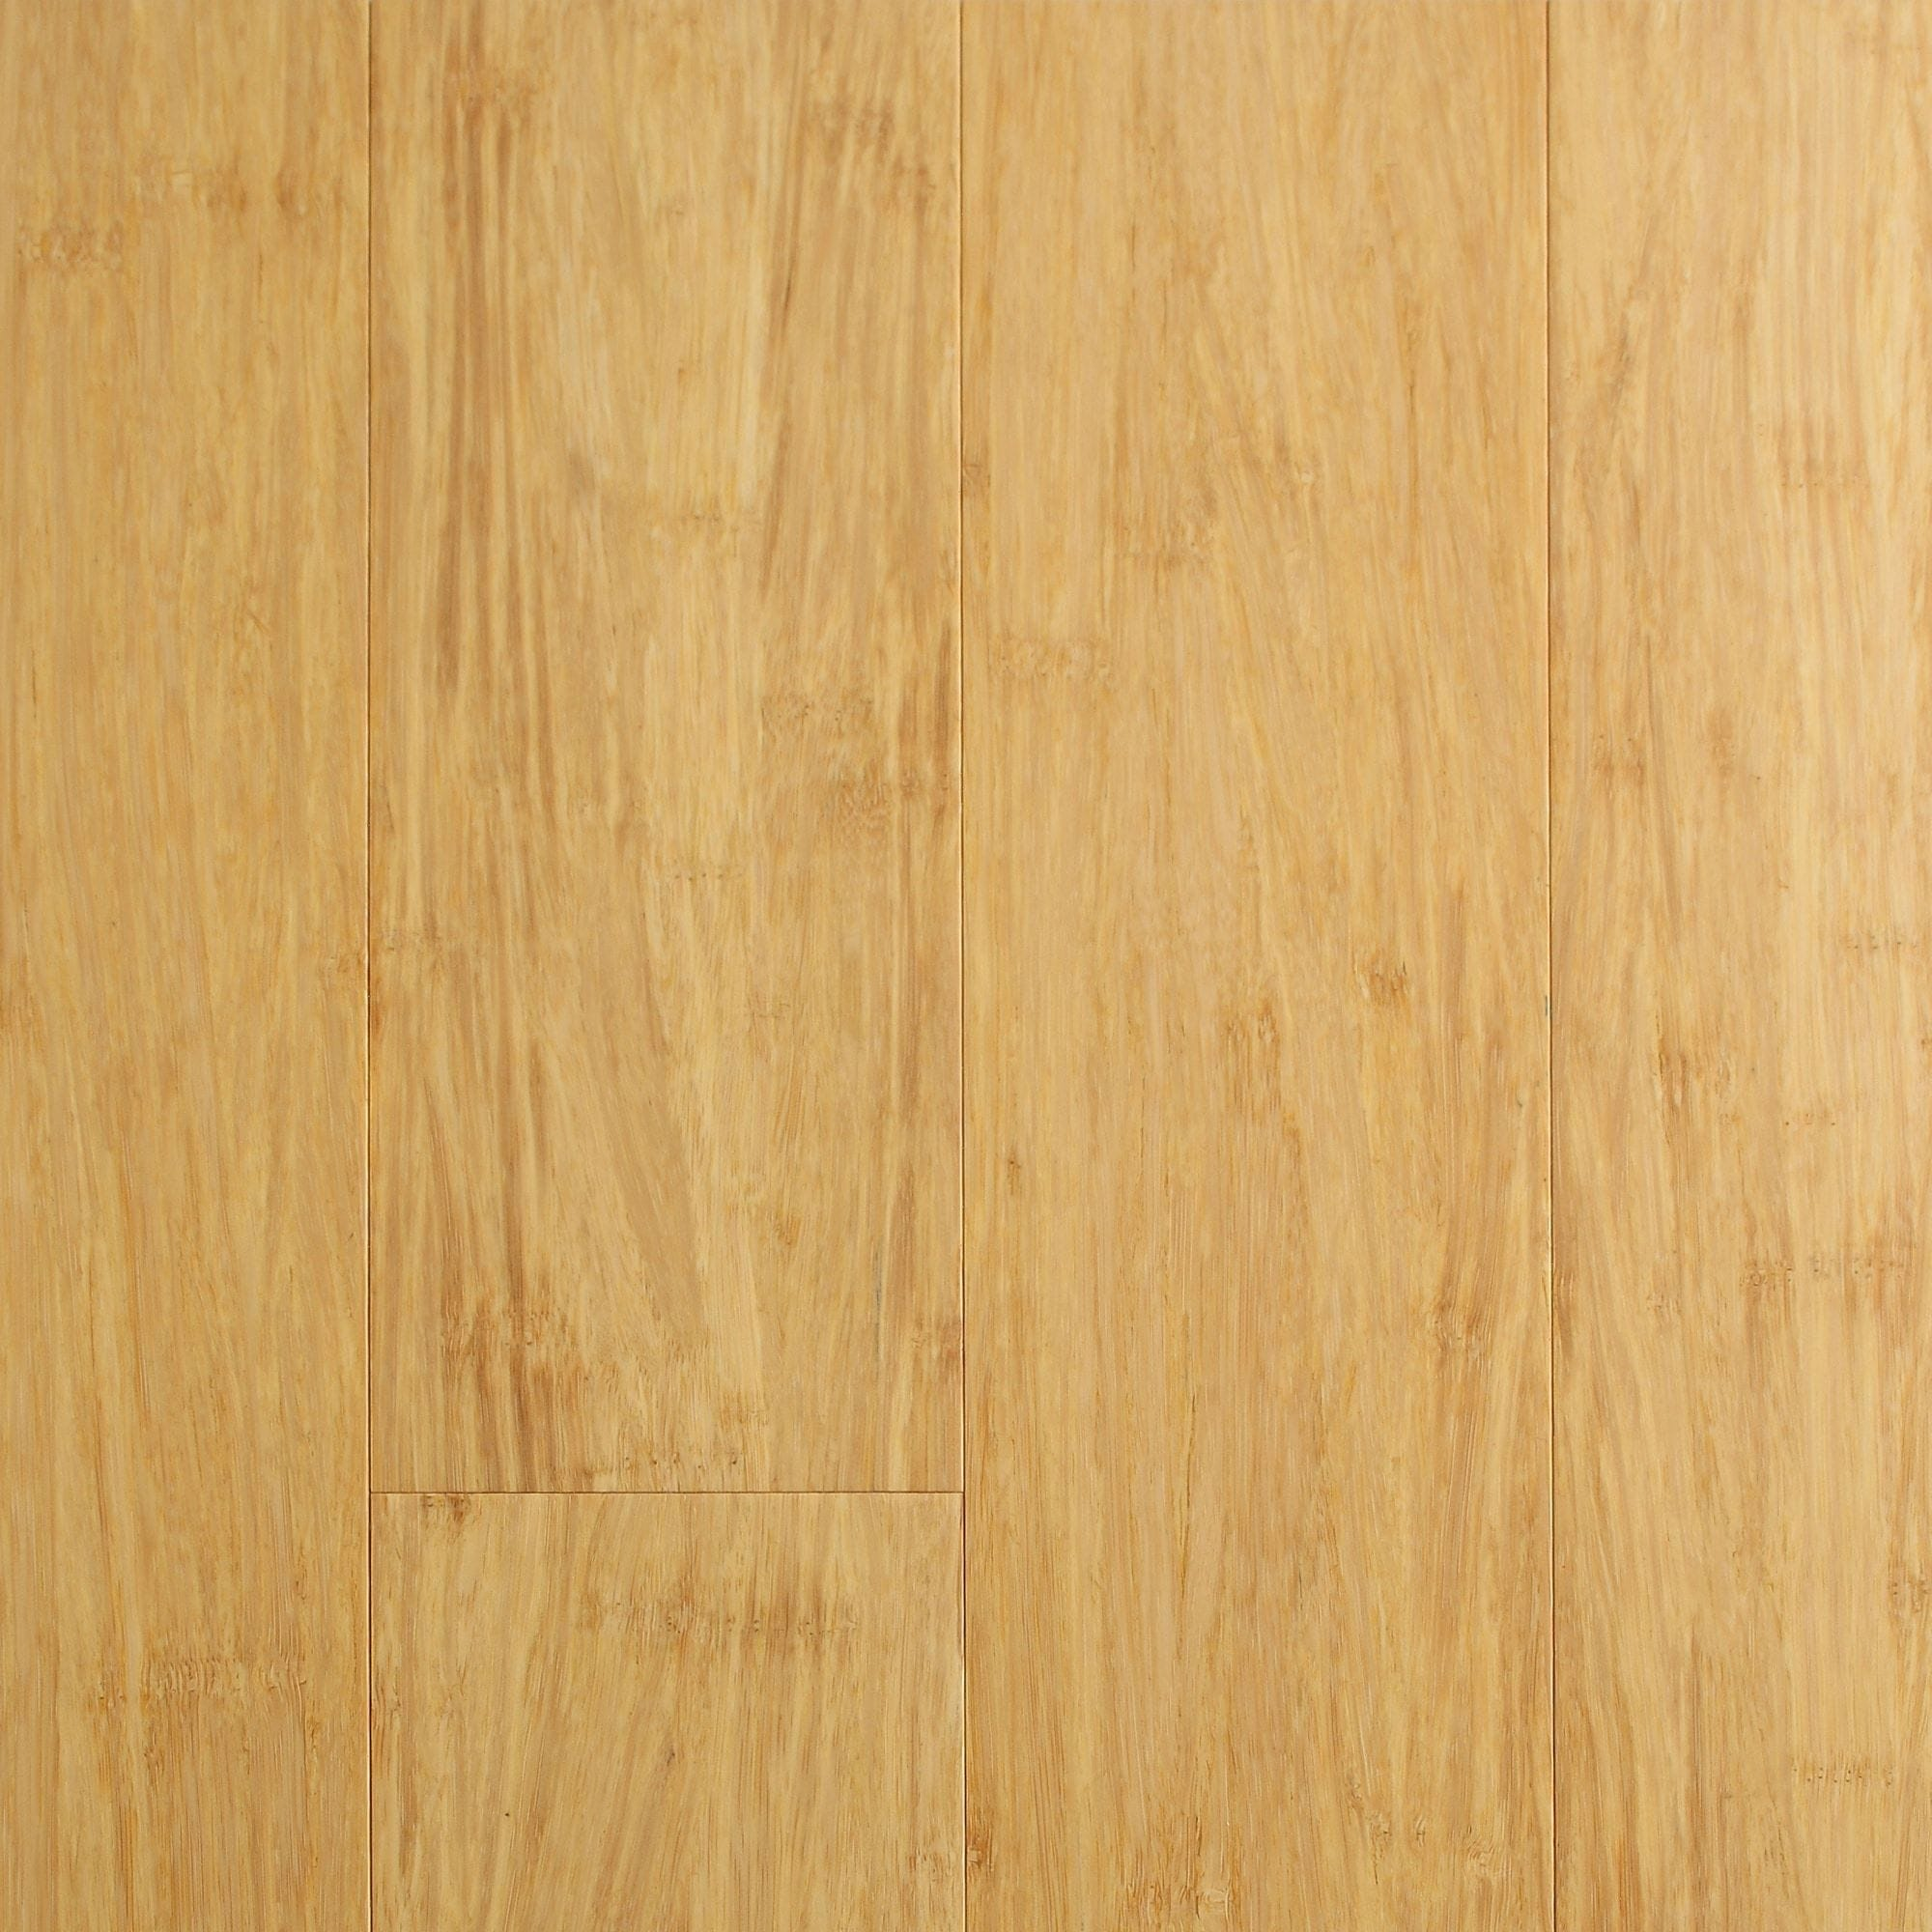 bamboo laminate flooring – Modern House